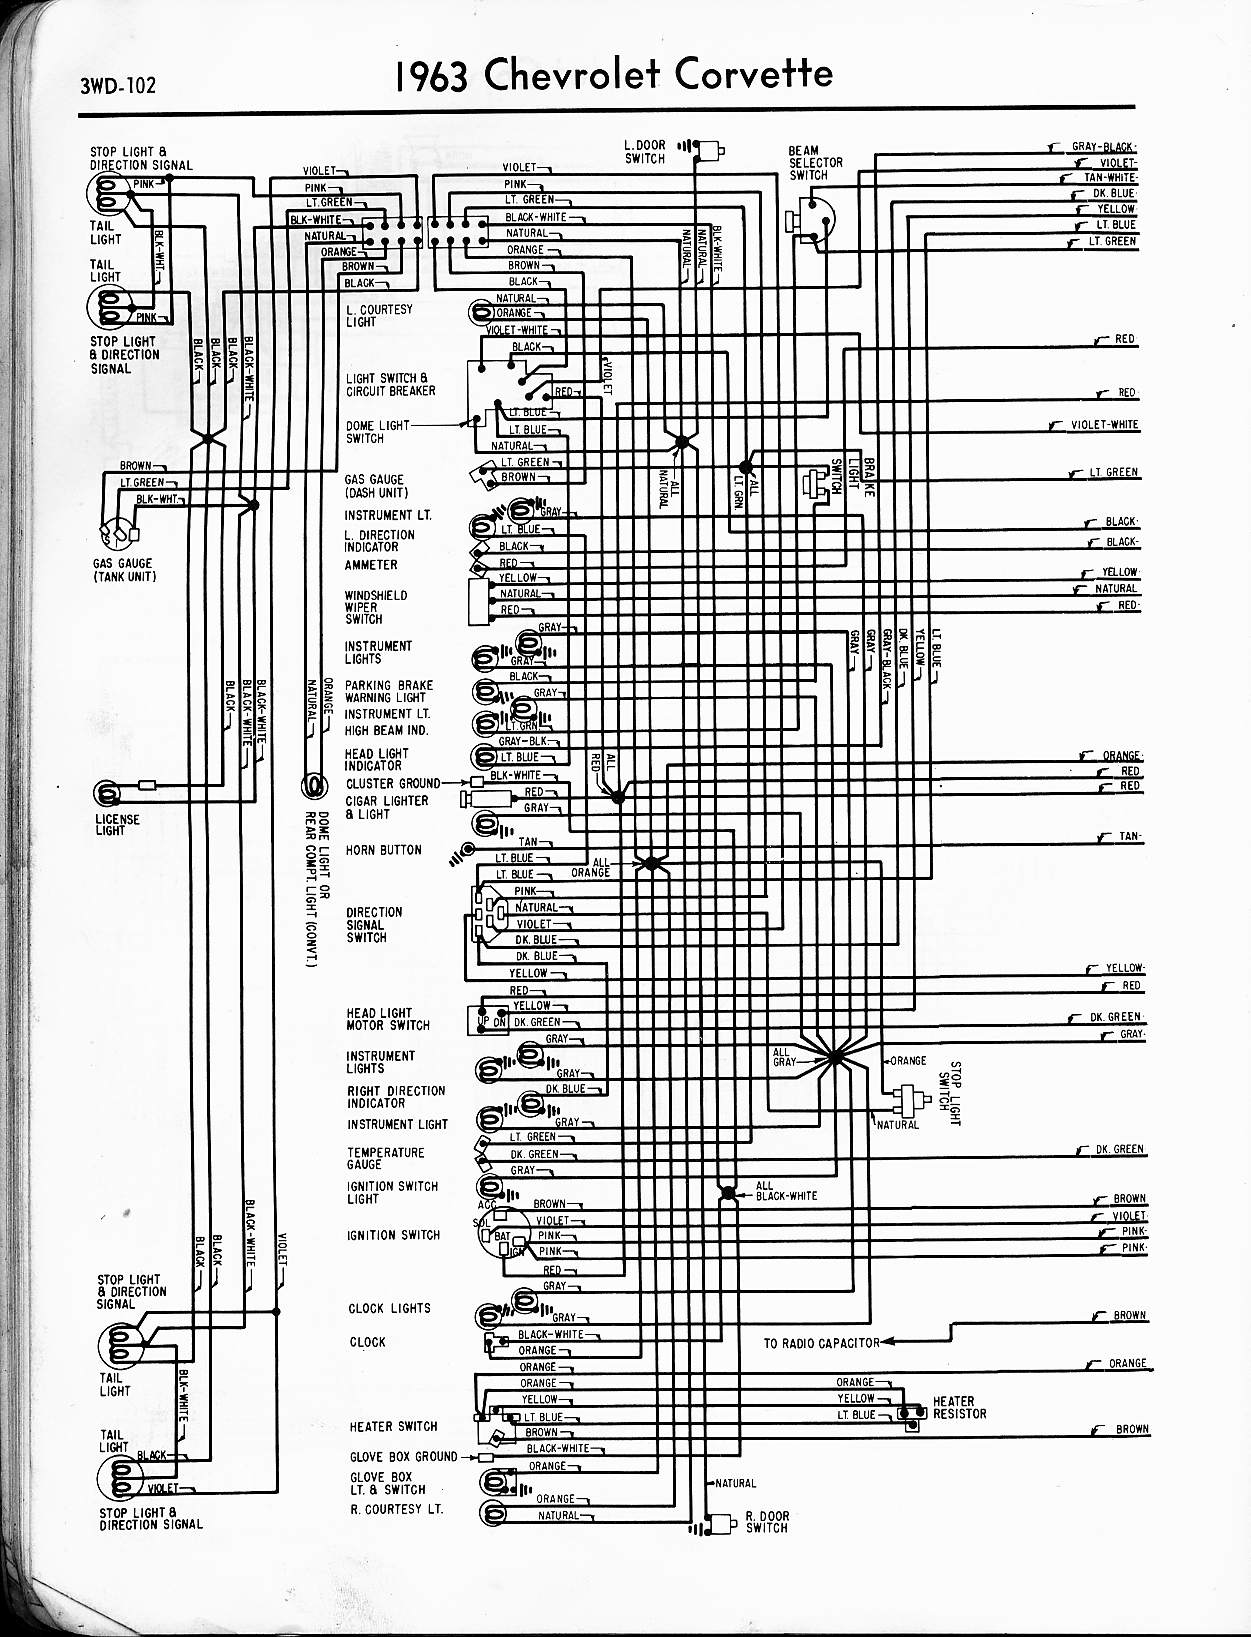 MWireChev63_3WD 102 57 65 chevy wiring diagrams 66 Corvette at aneh.co